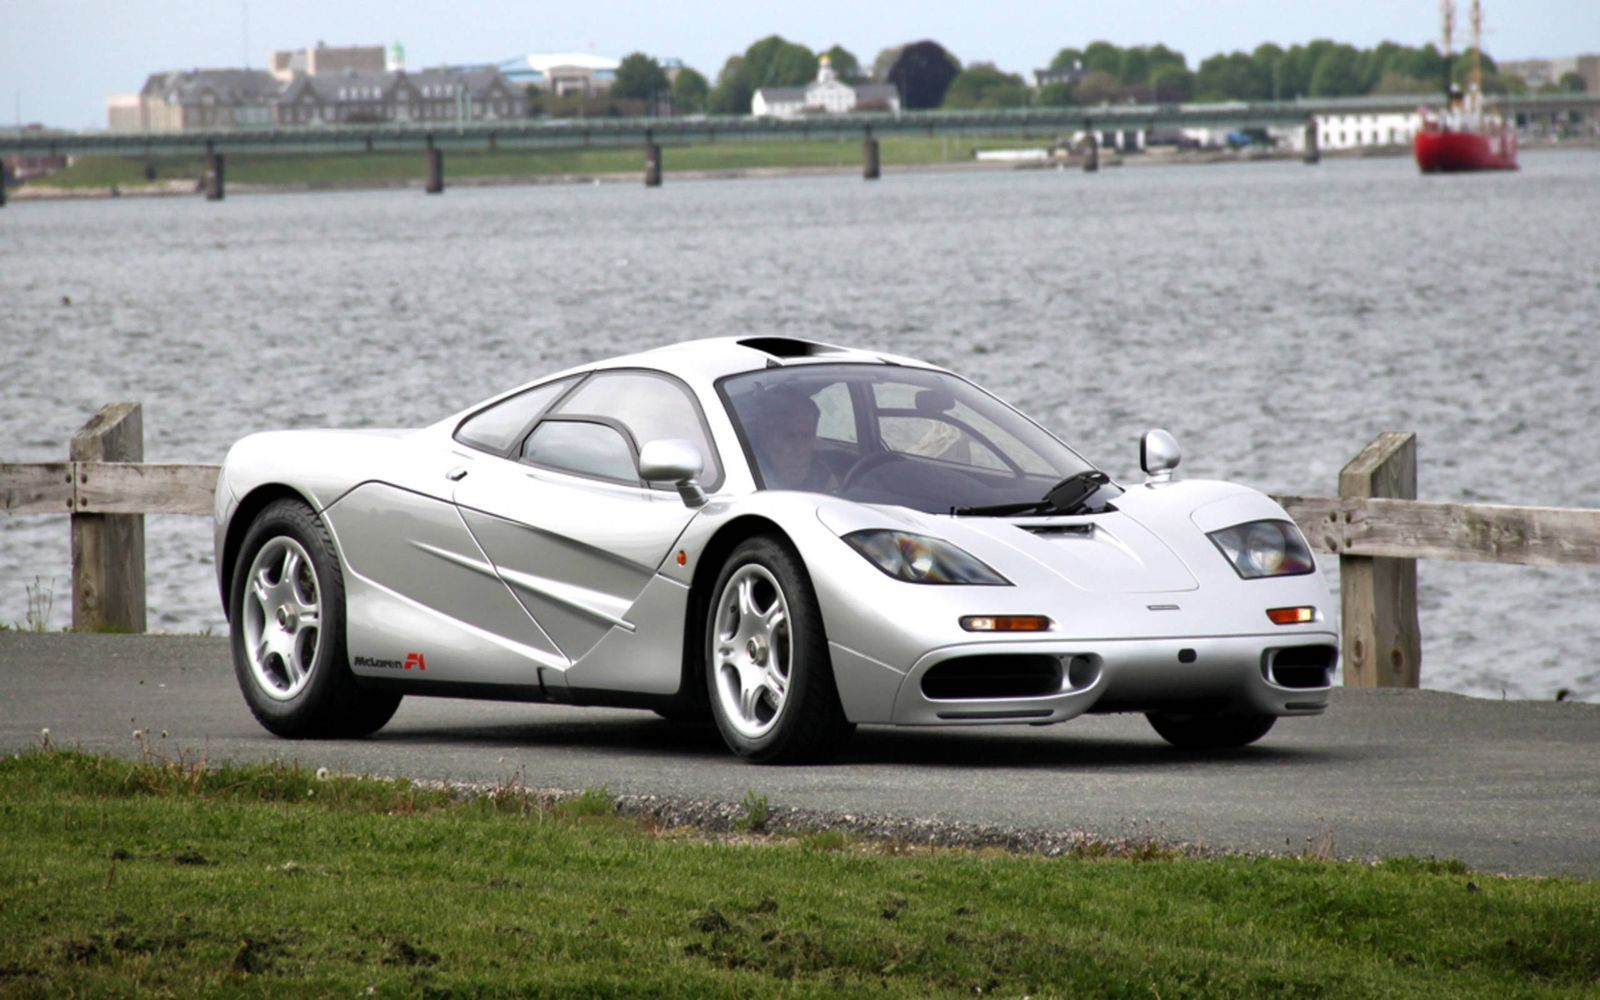 Here S Why The Mclaren F1 Is Still A Tour De Force 25 Years Laterautoweek In 2020 Car In The World Mclaren F1 Mclaren